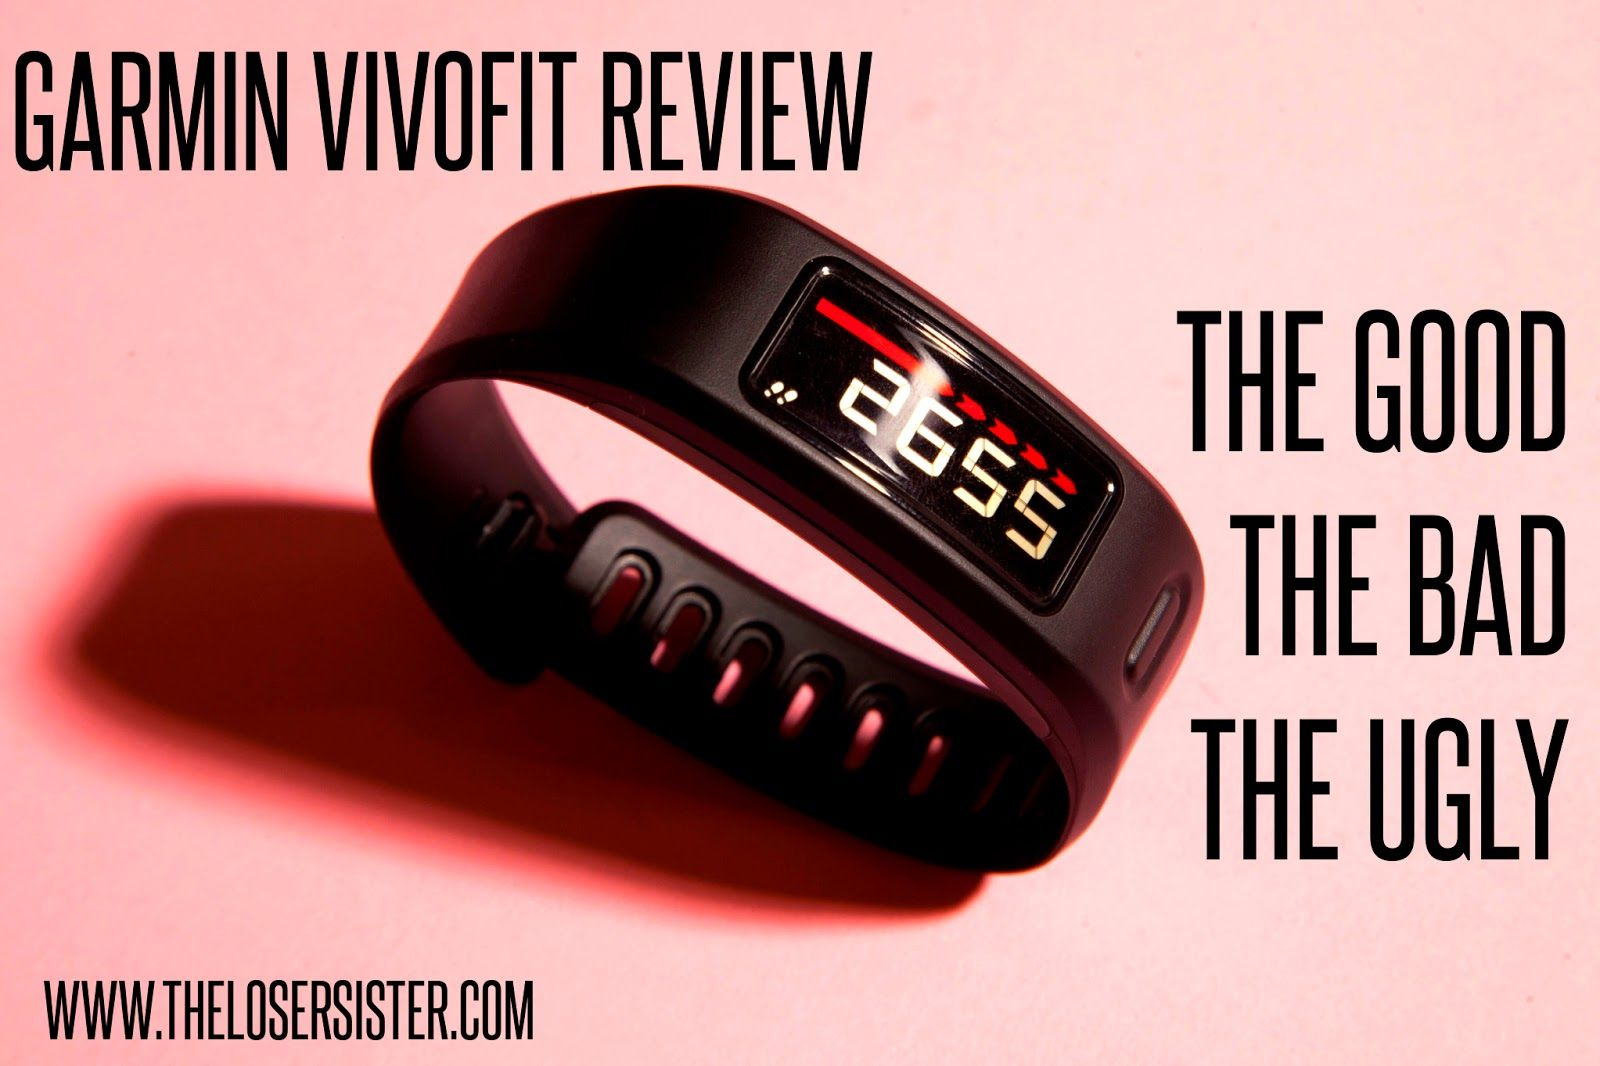 theLOSERsister: My Garmin Vivo-fit review